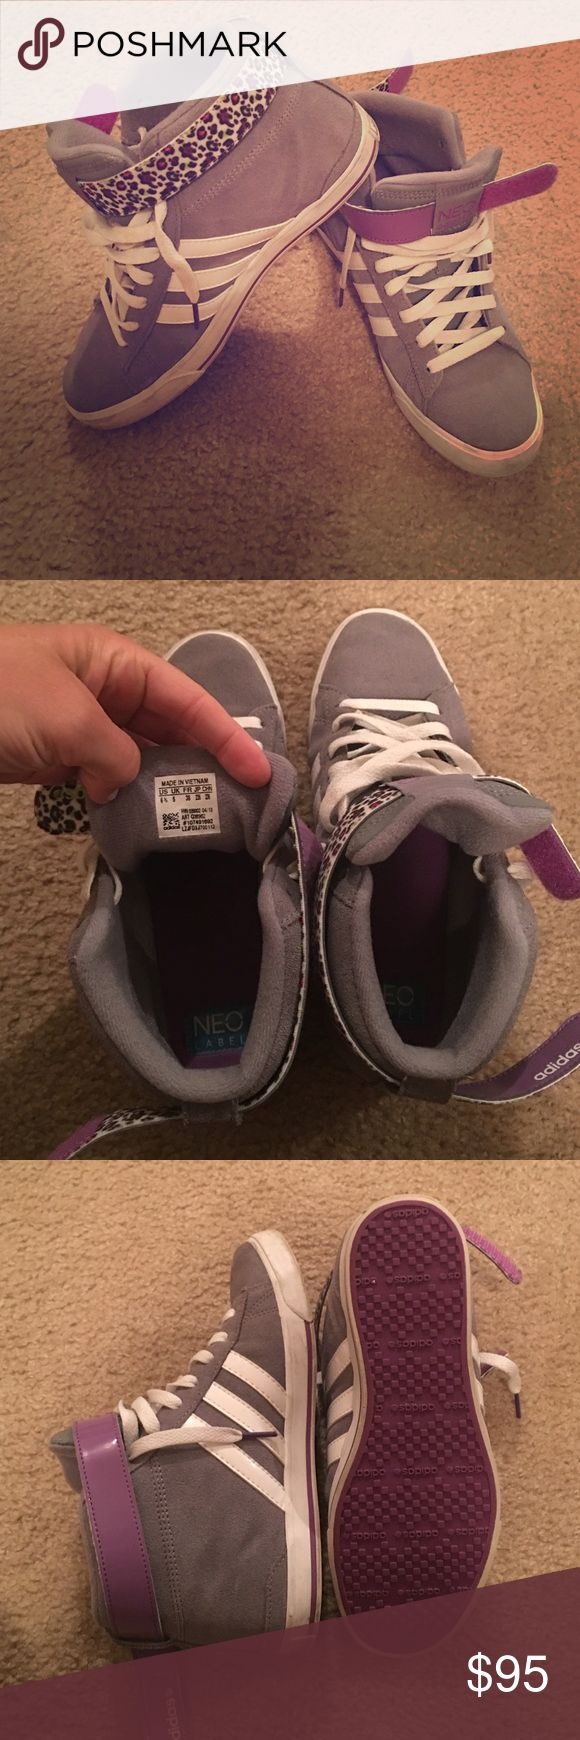 Adidas grey/white high tops - sz 6.5 Adidas NEO high tops - suede outside - gently used - still in very good condition! Adidas Shoes Athletic Shoes